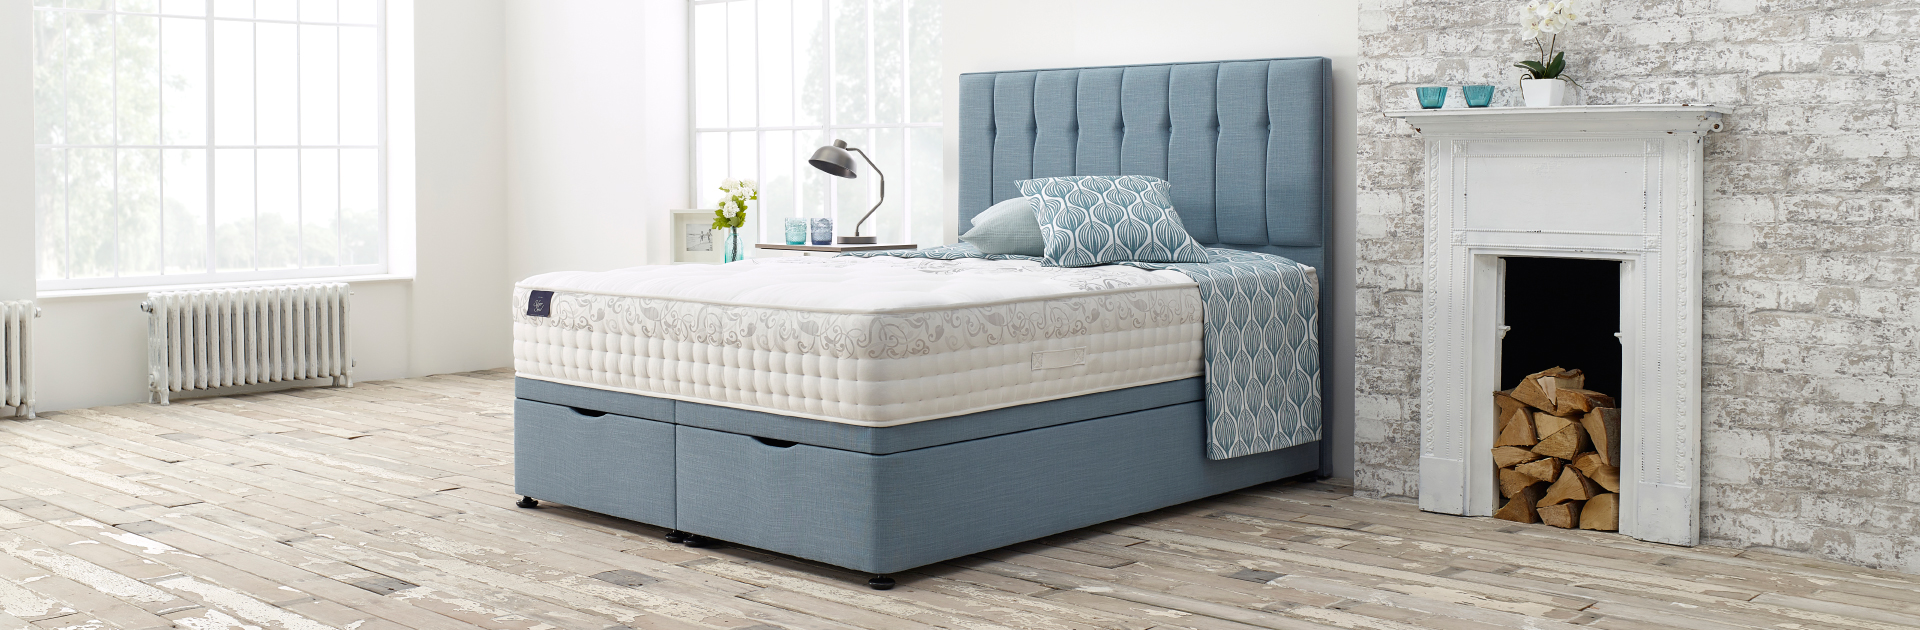 Silver Seal Bed by Slumberland at Nigel Byroms.jpg